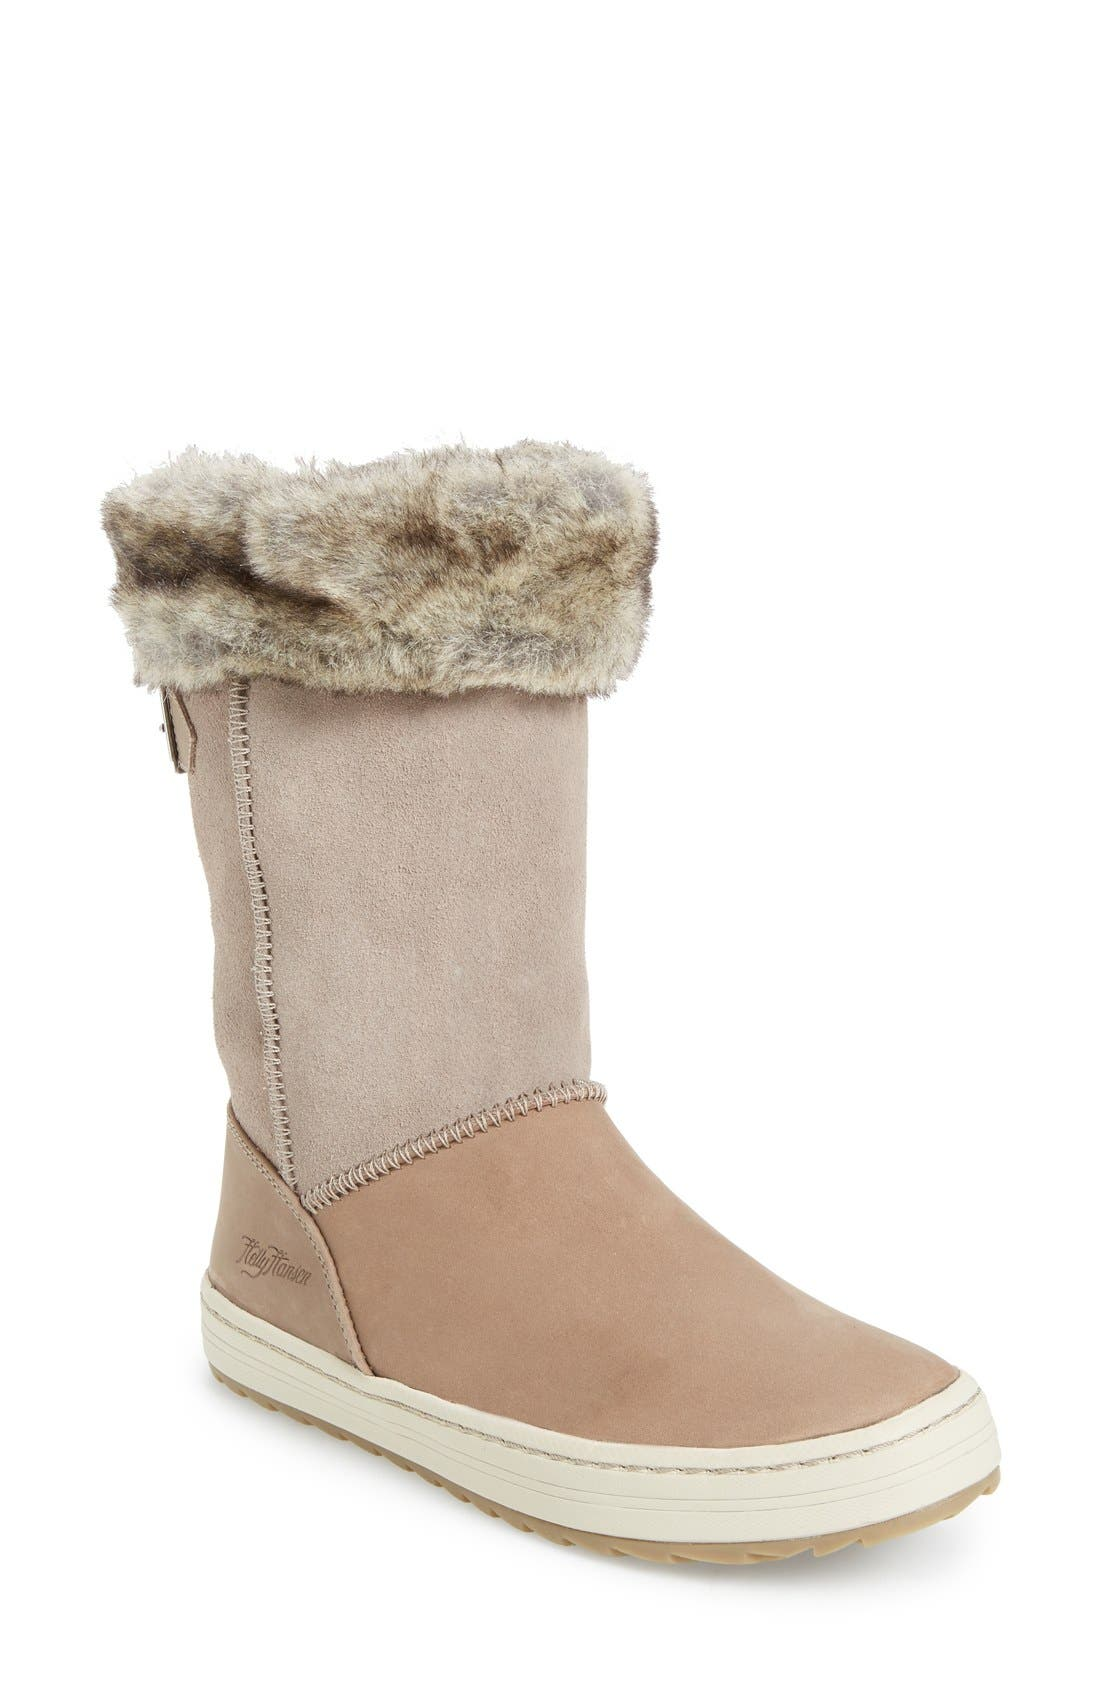 HELLY HANSEN Alexandra 2 Waterproof Boot with Faux Fur Trim